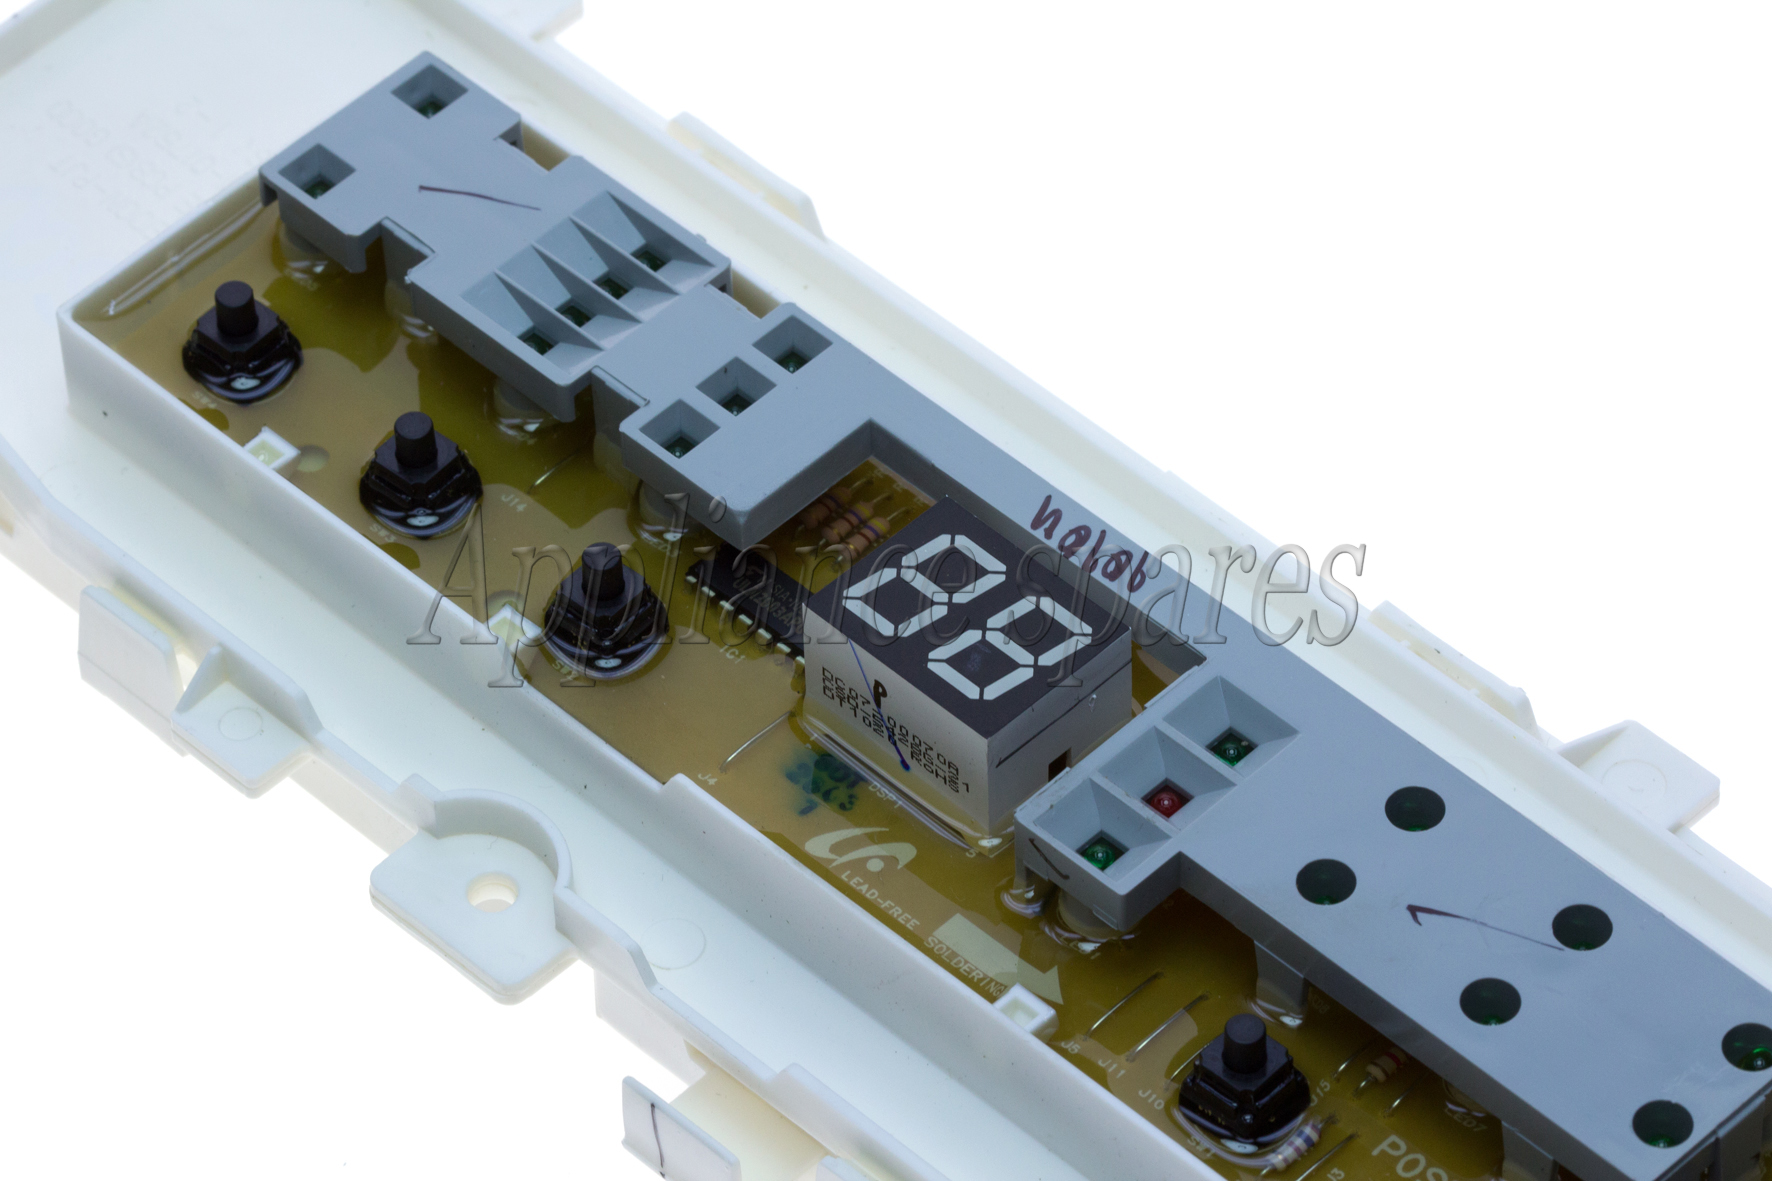 samsung top loader washing machine pc board mfsui80ncp lategan and washing machine motor wiring diagram samsung top loader washing machine pc board mfsui80ncp